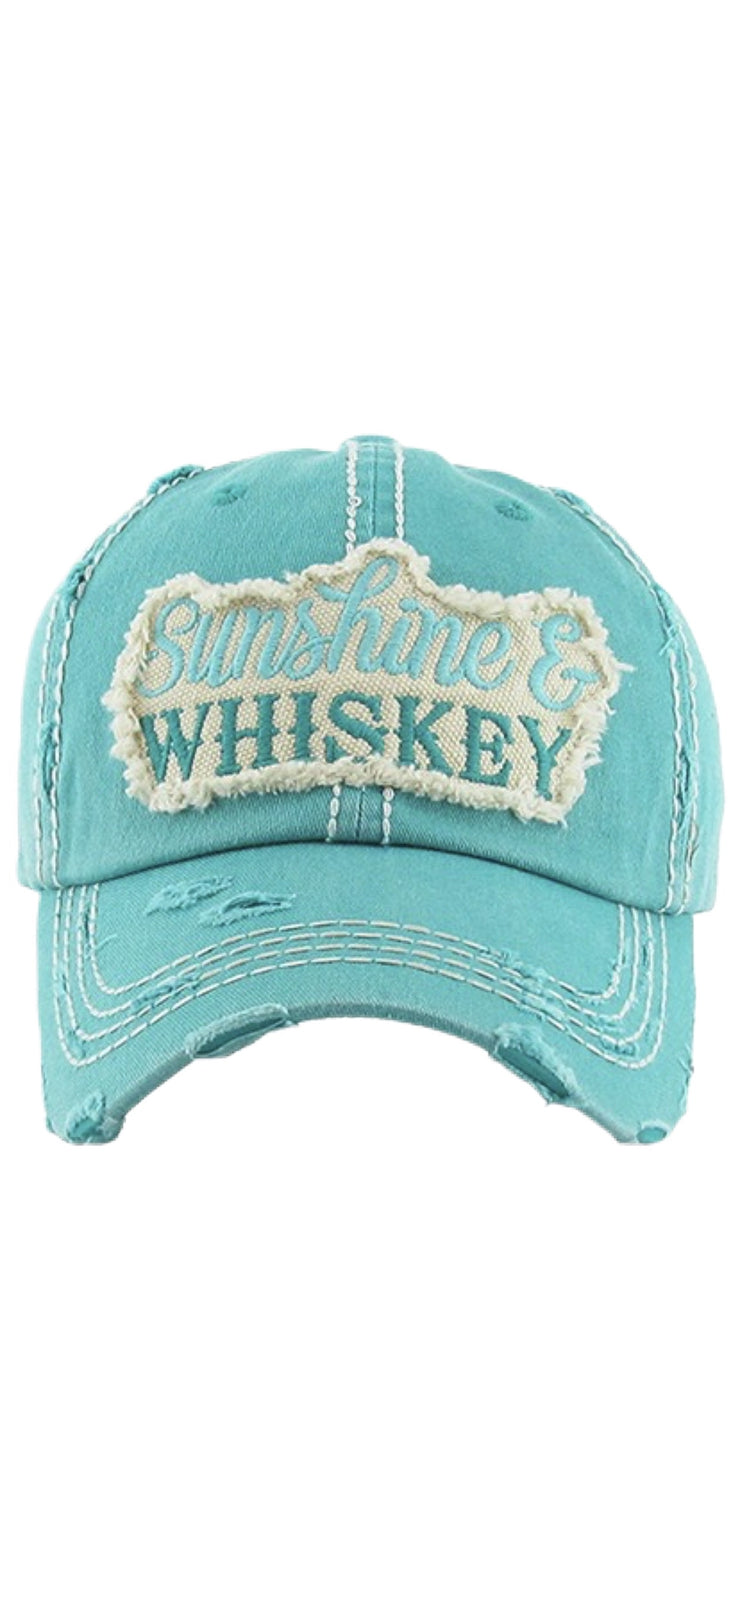 Sunshine And Whiskey Hat - [product_style] - Hats - WILLOWTREE MARKET